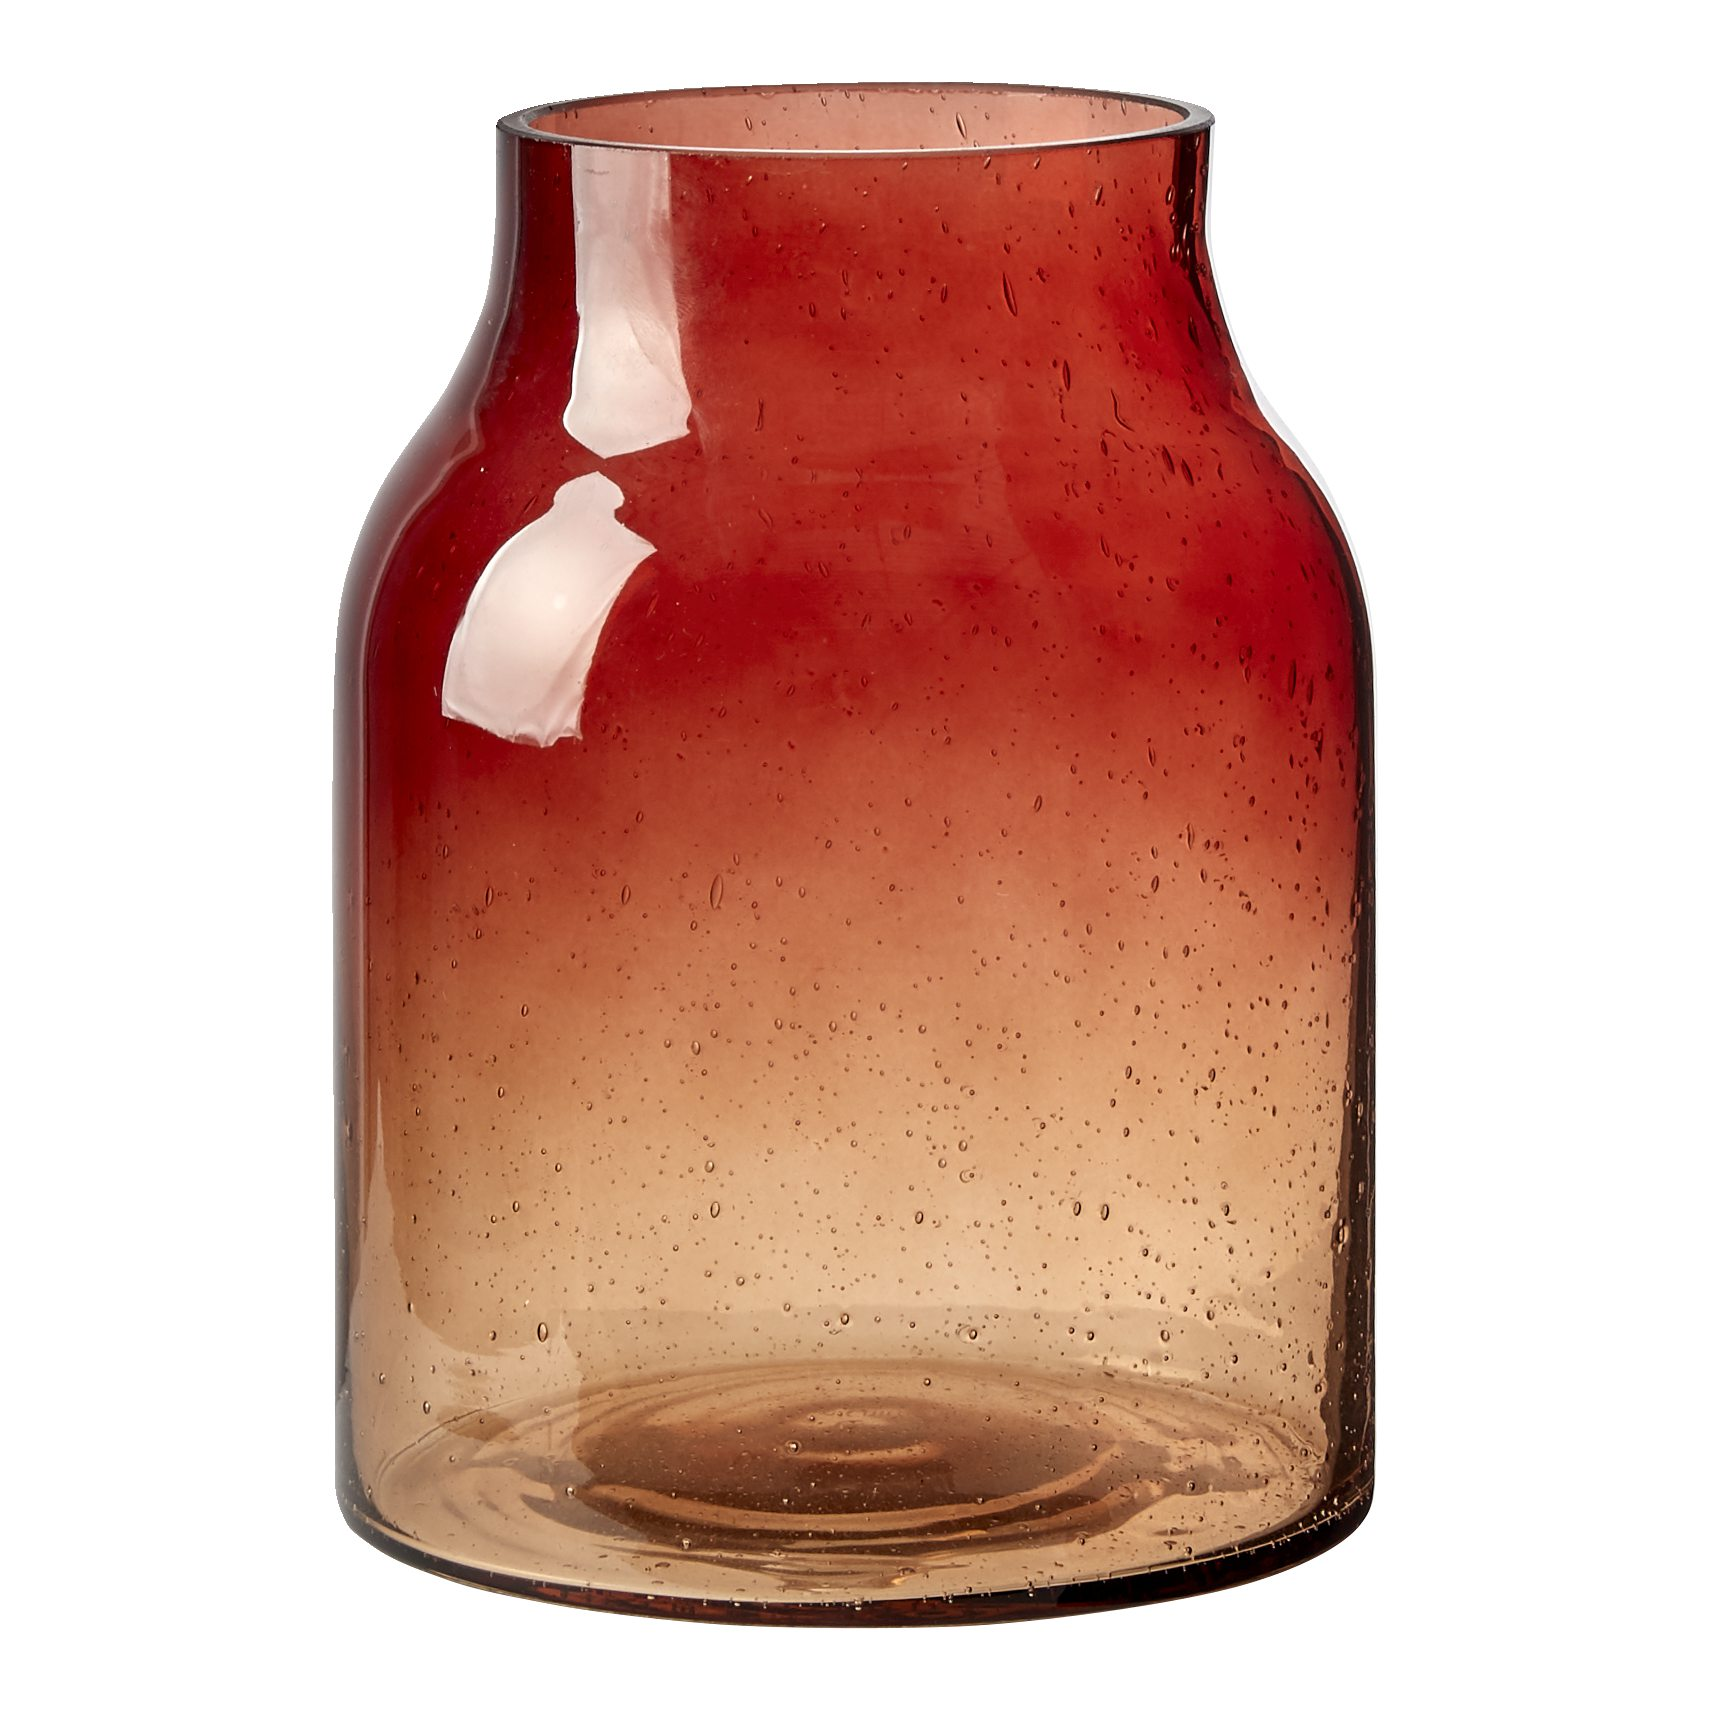 Esme vase 20 x 15 cm - Orange glas